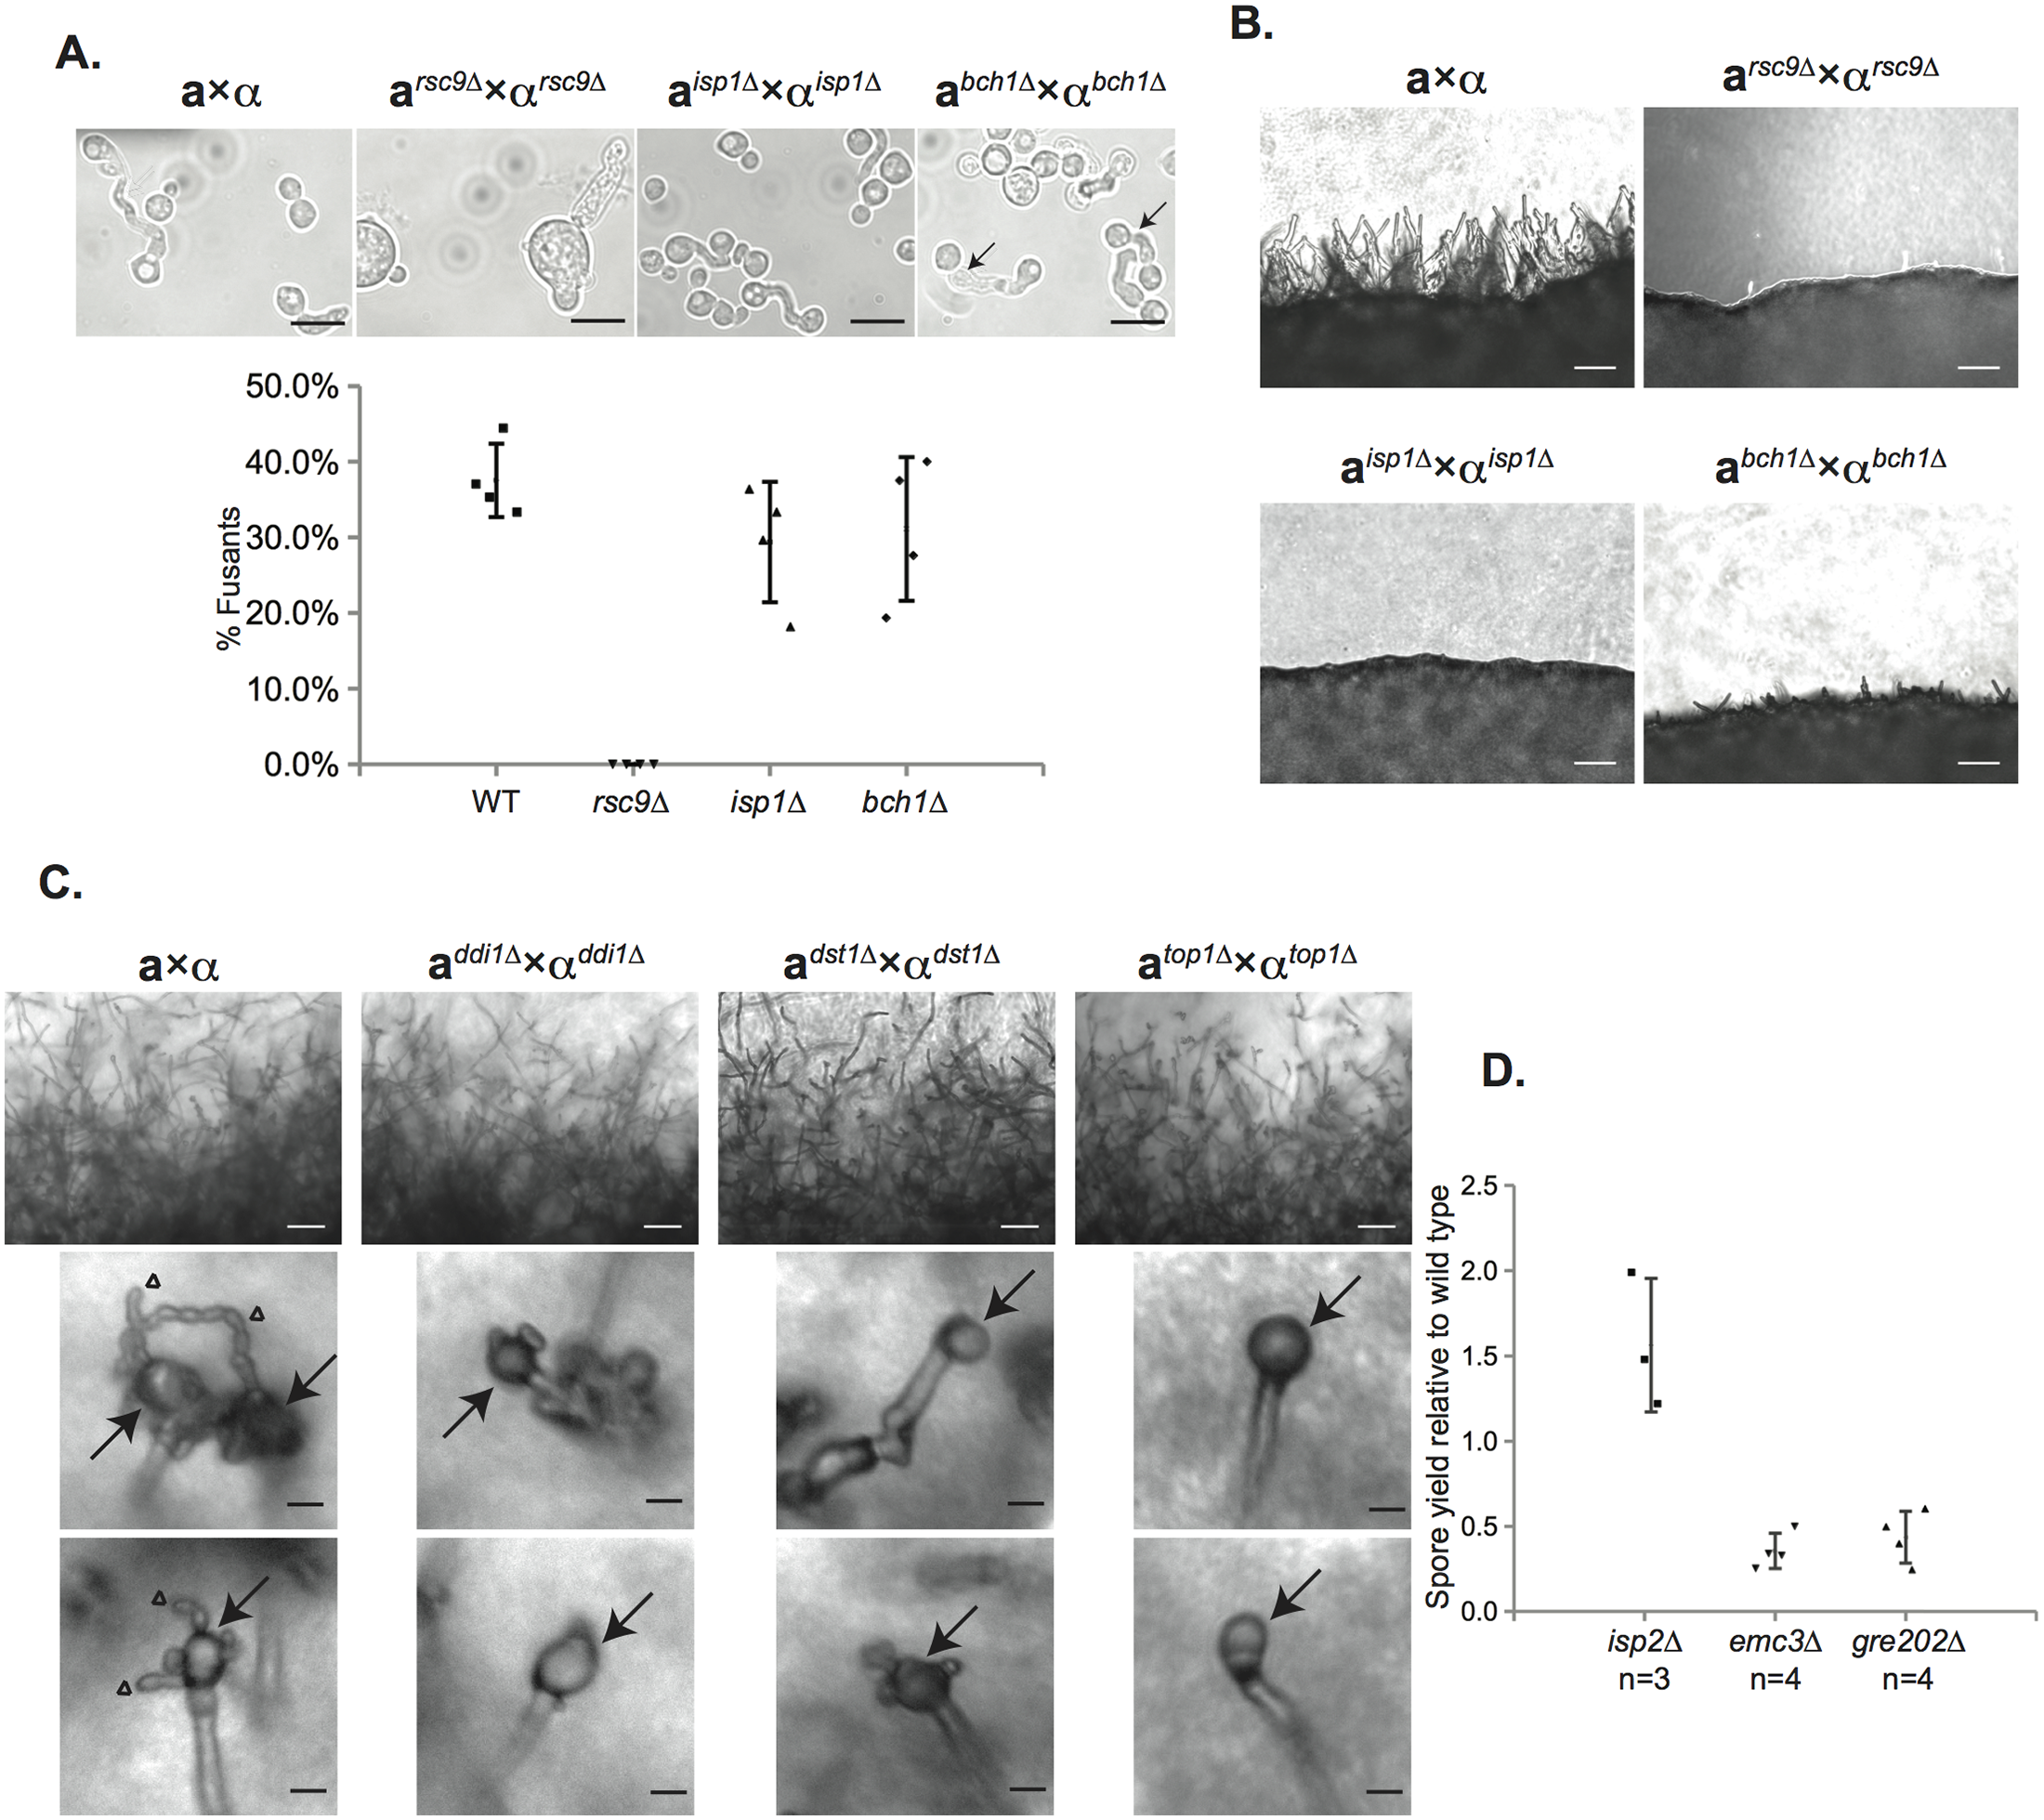 Characterization of the sexual development of deletion mutants for spore-enriched proteins.